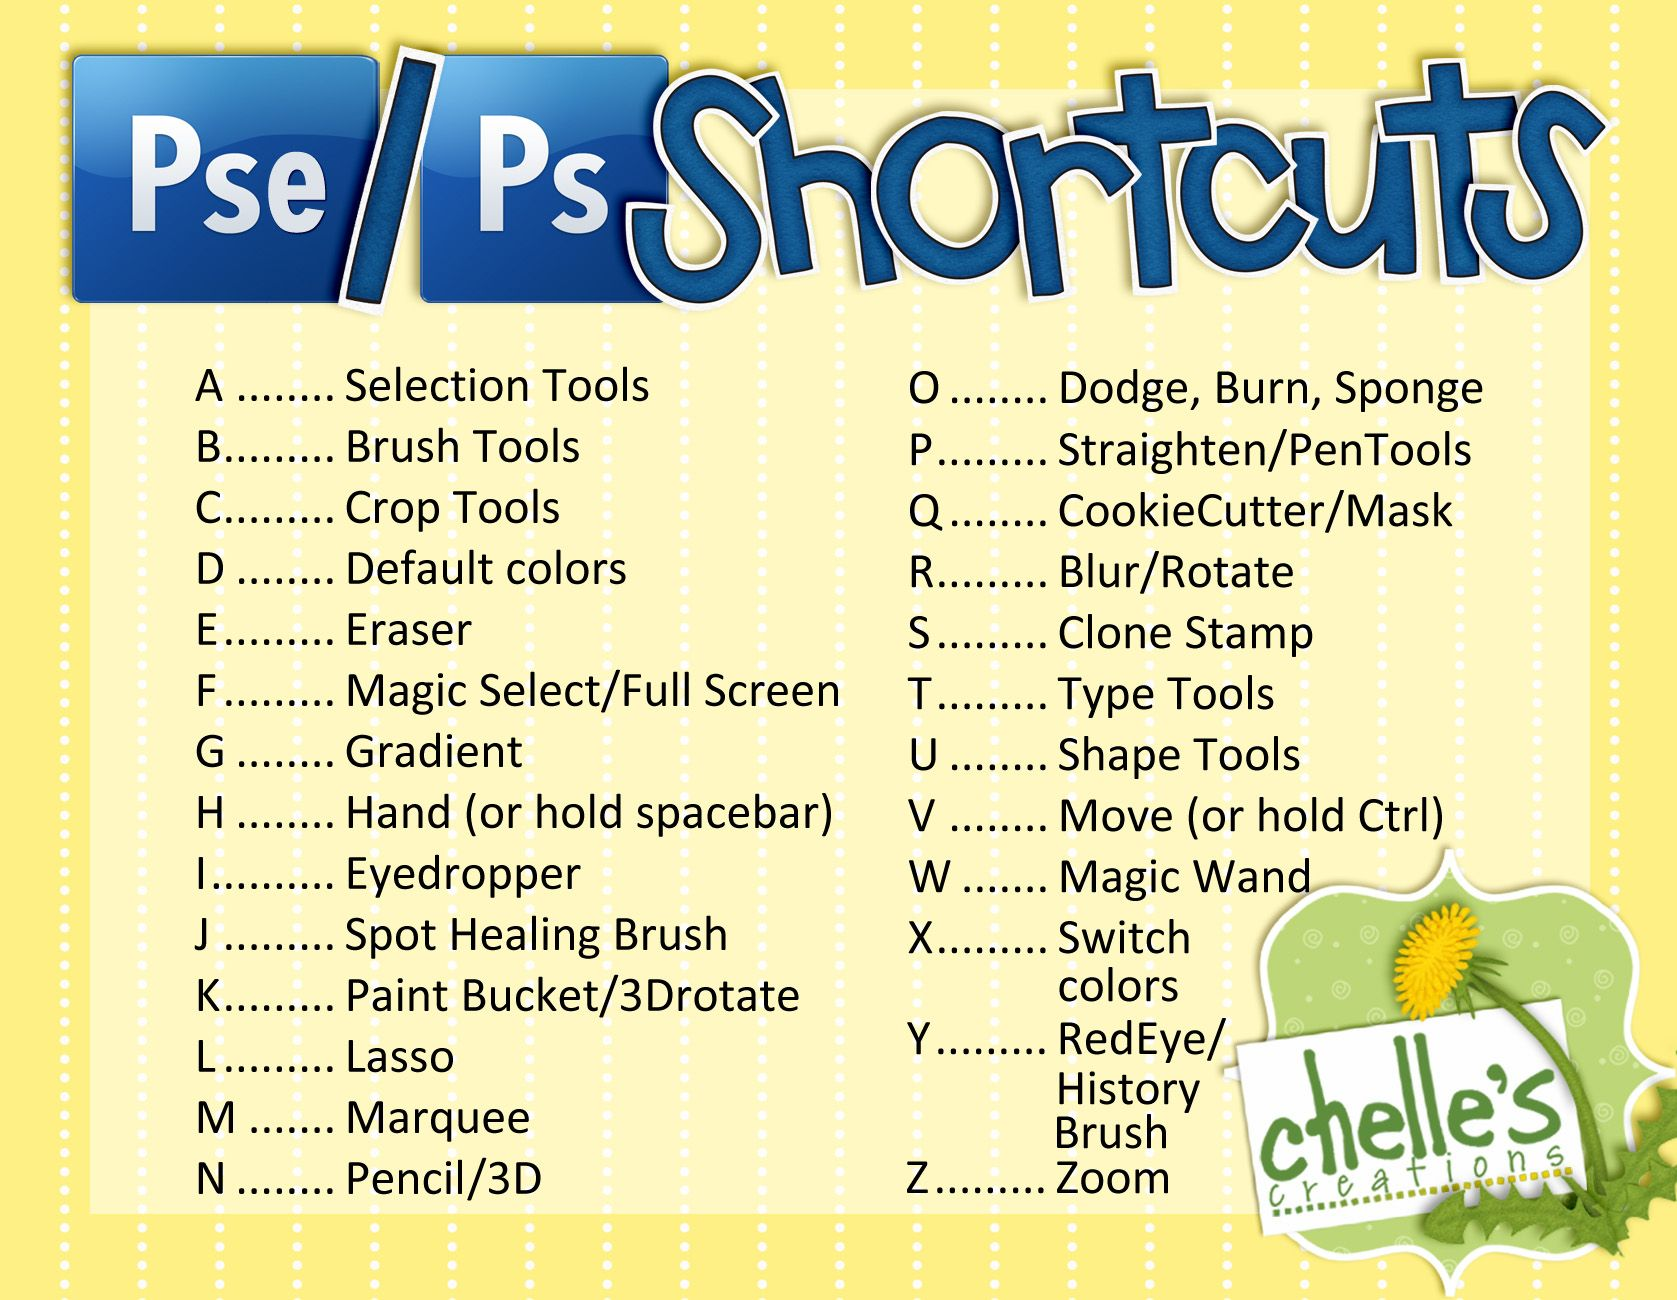 Chelles creations photoshop photoshop elements shortcuts chelles creations photoshop photoshop elements shortcuts chelles creations baditri Images